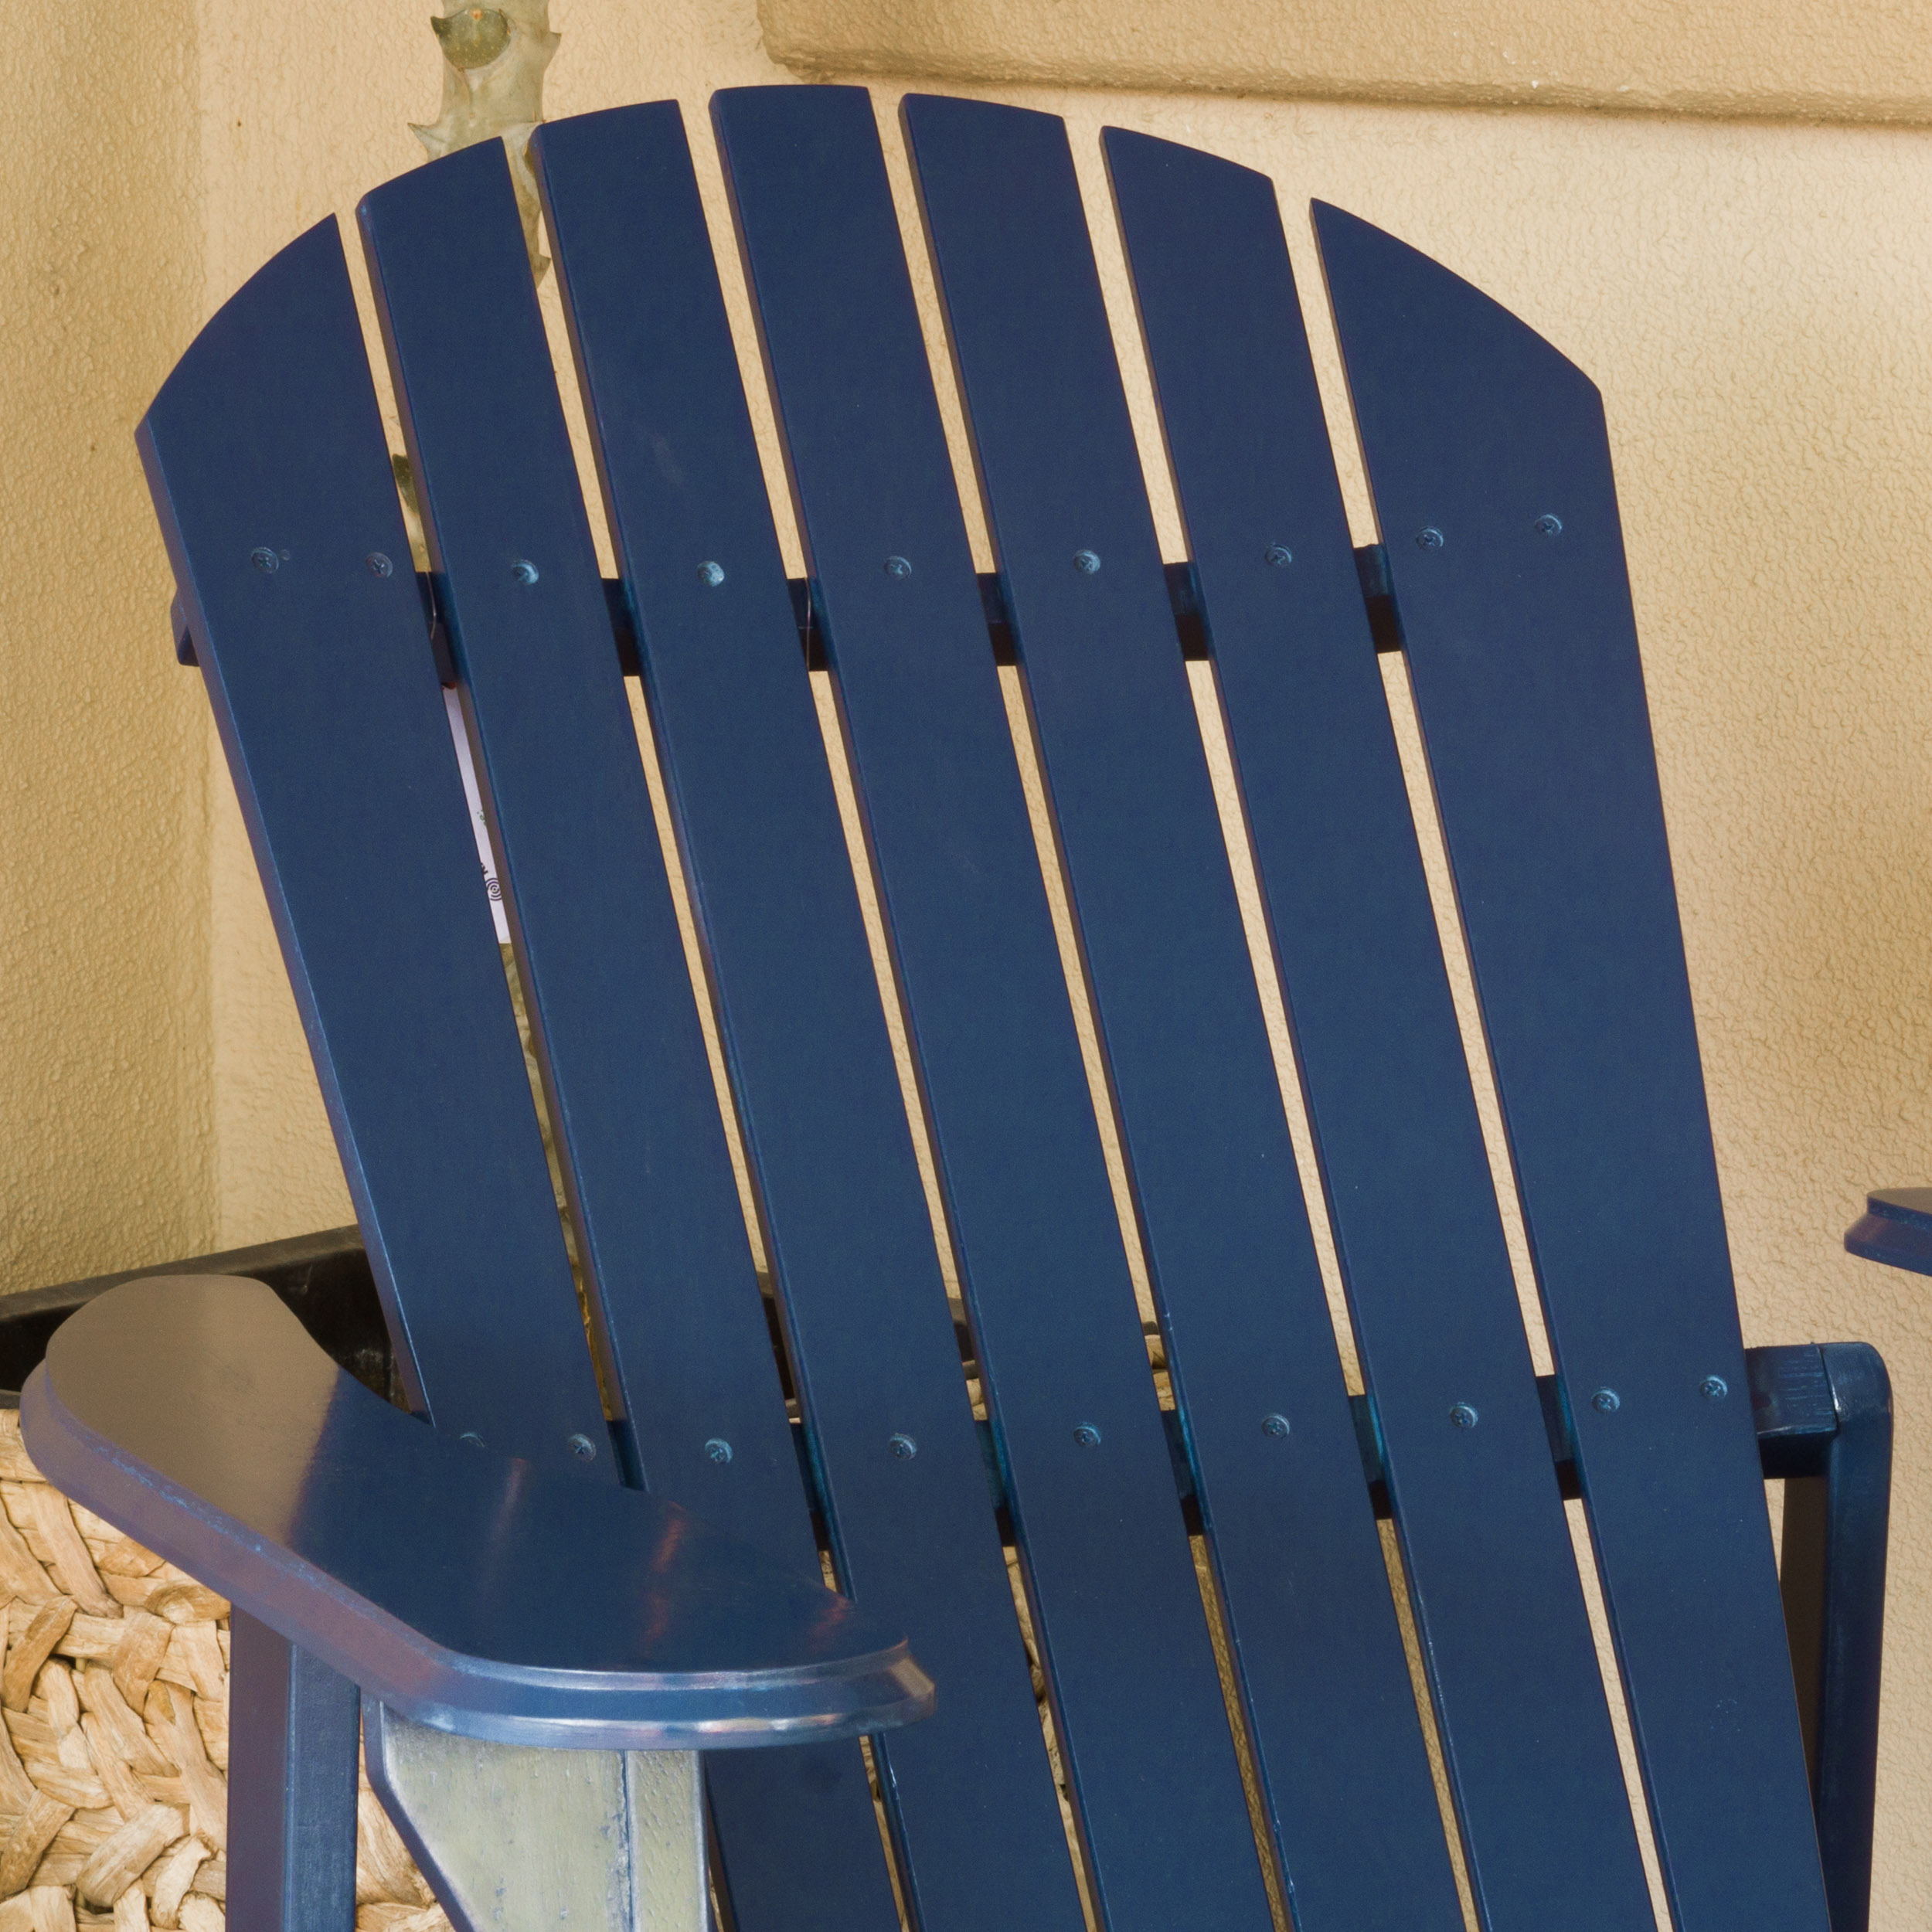 Milan Outdoor Folding Wood Adirondack Chair - image 2 of 4